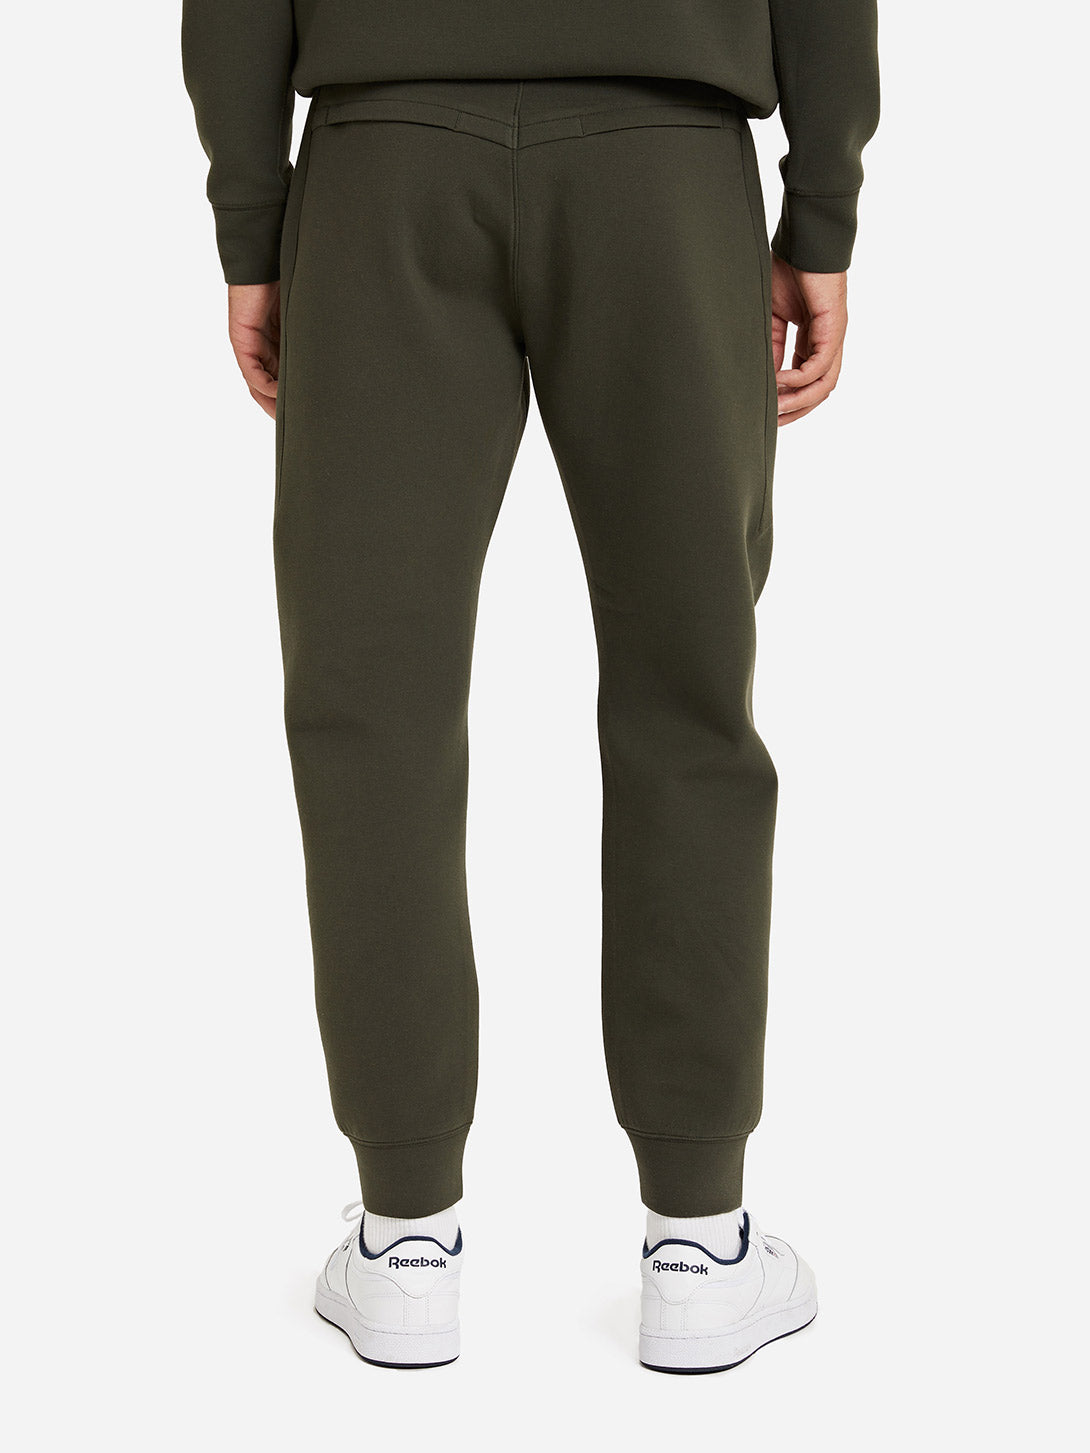 OLIVE GREEN jogger sweatpants for men apollo sweatpants by ons clothing